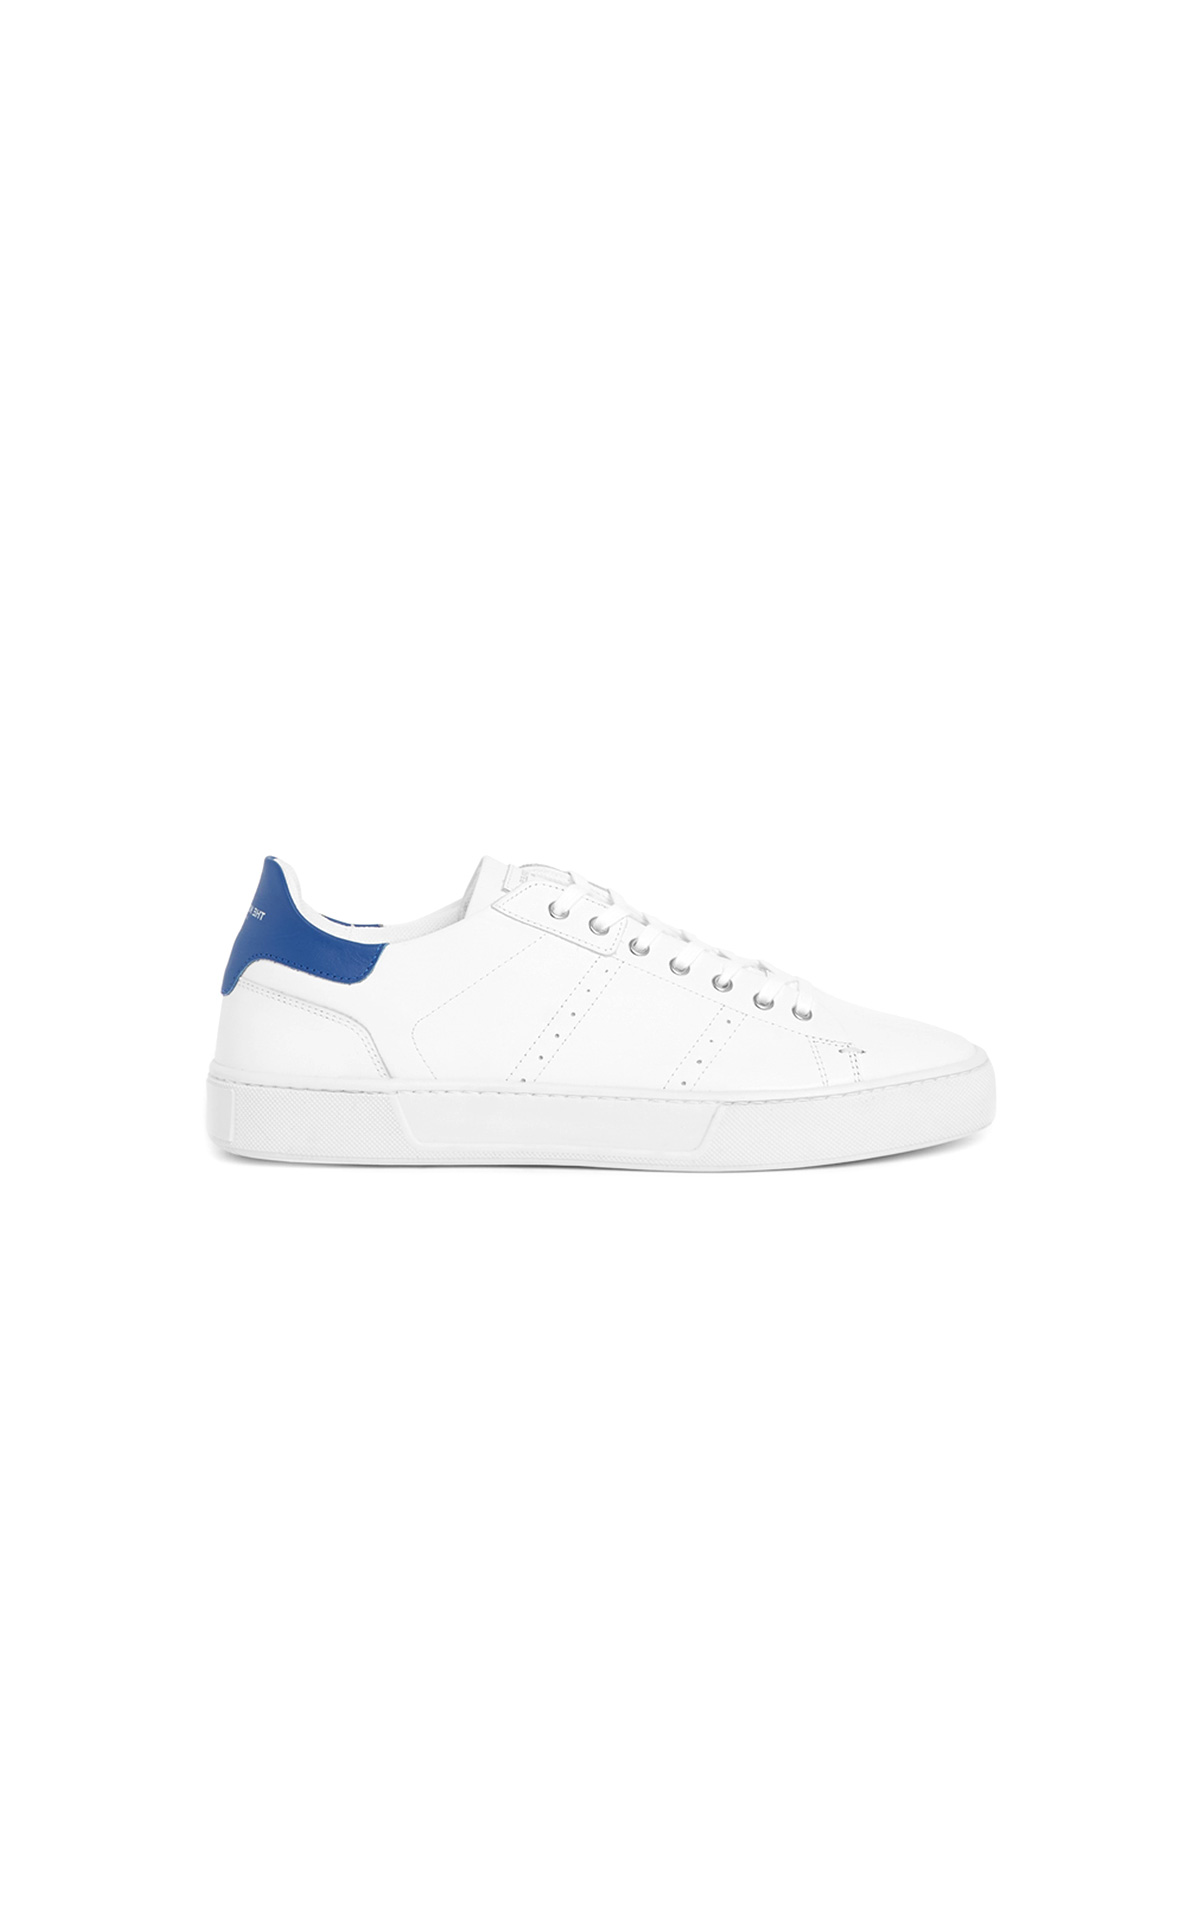 The Kooples Mesn's white sneakers